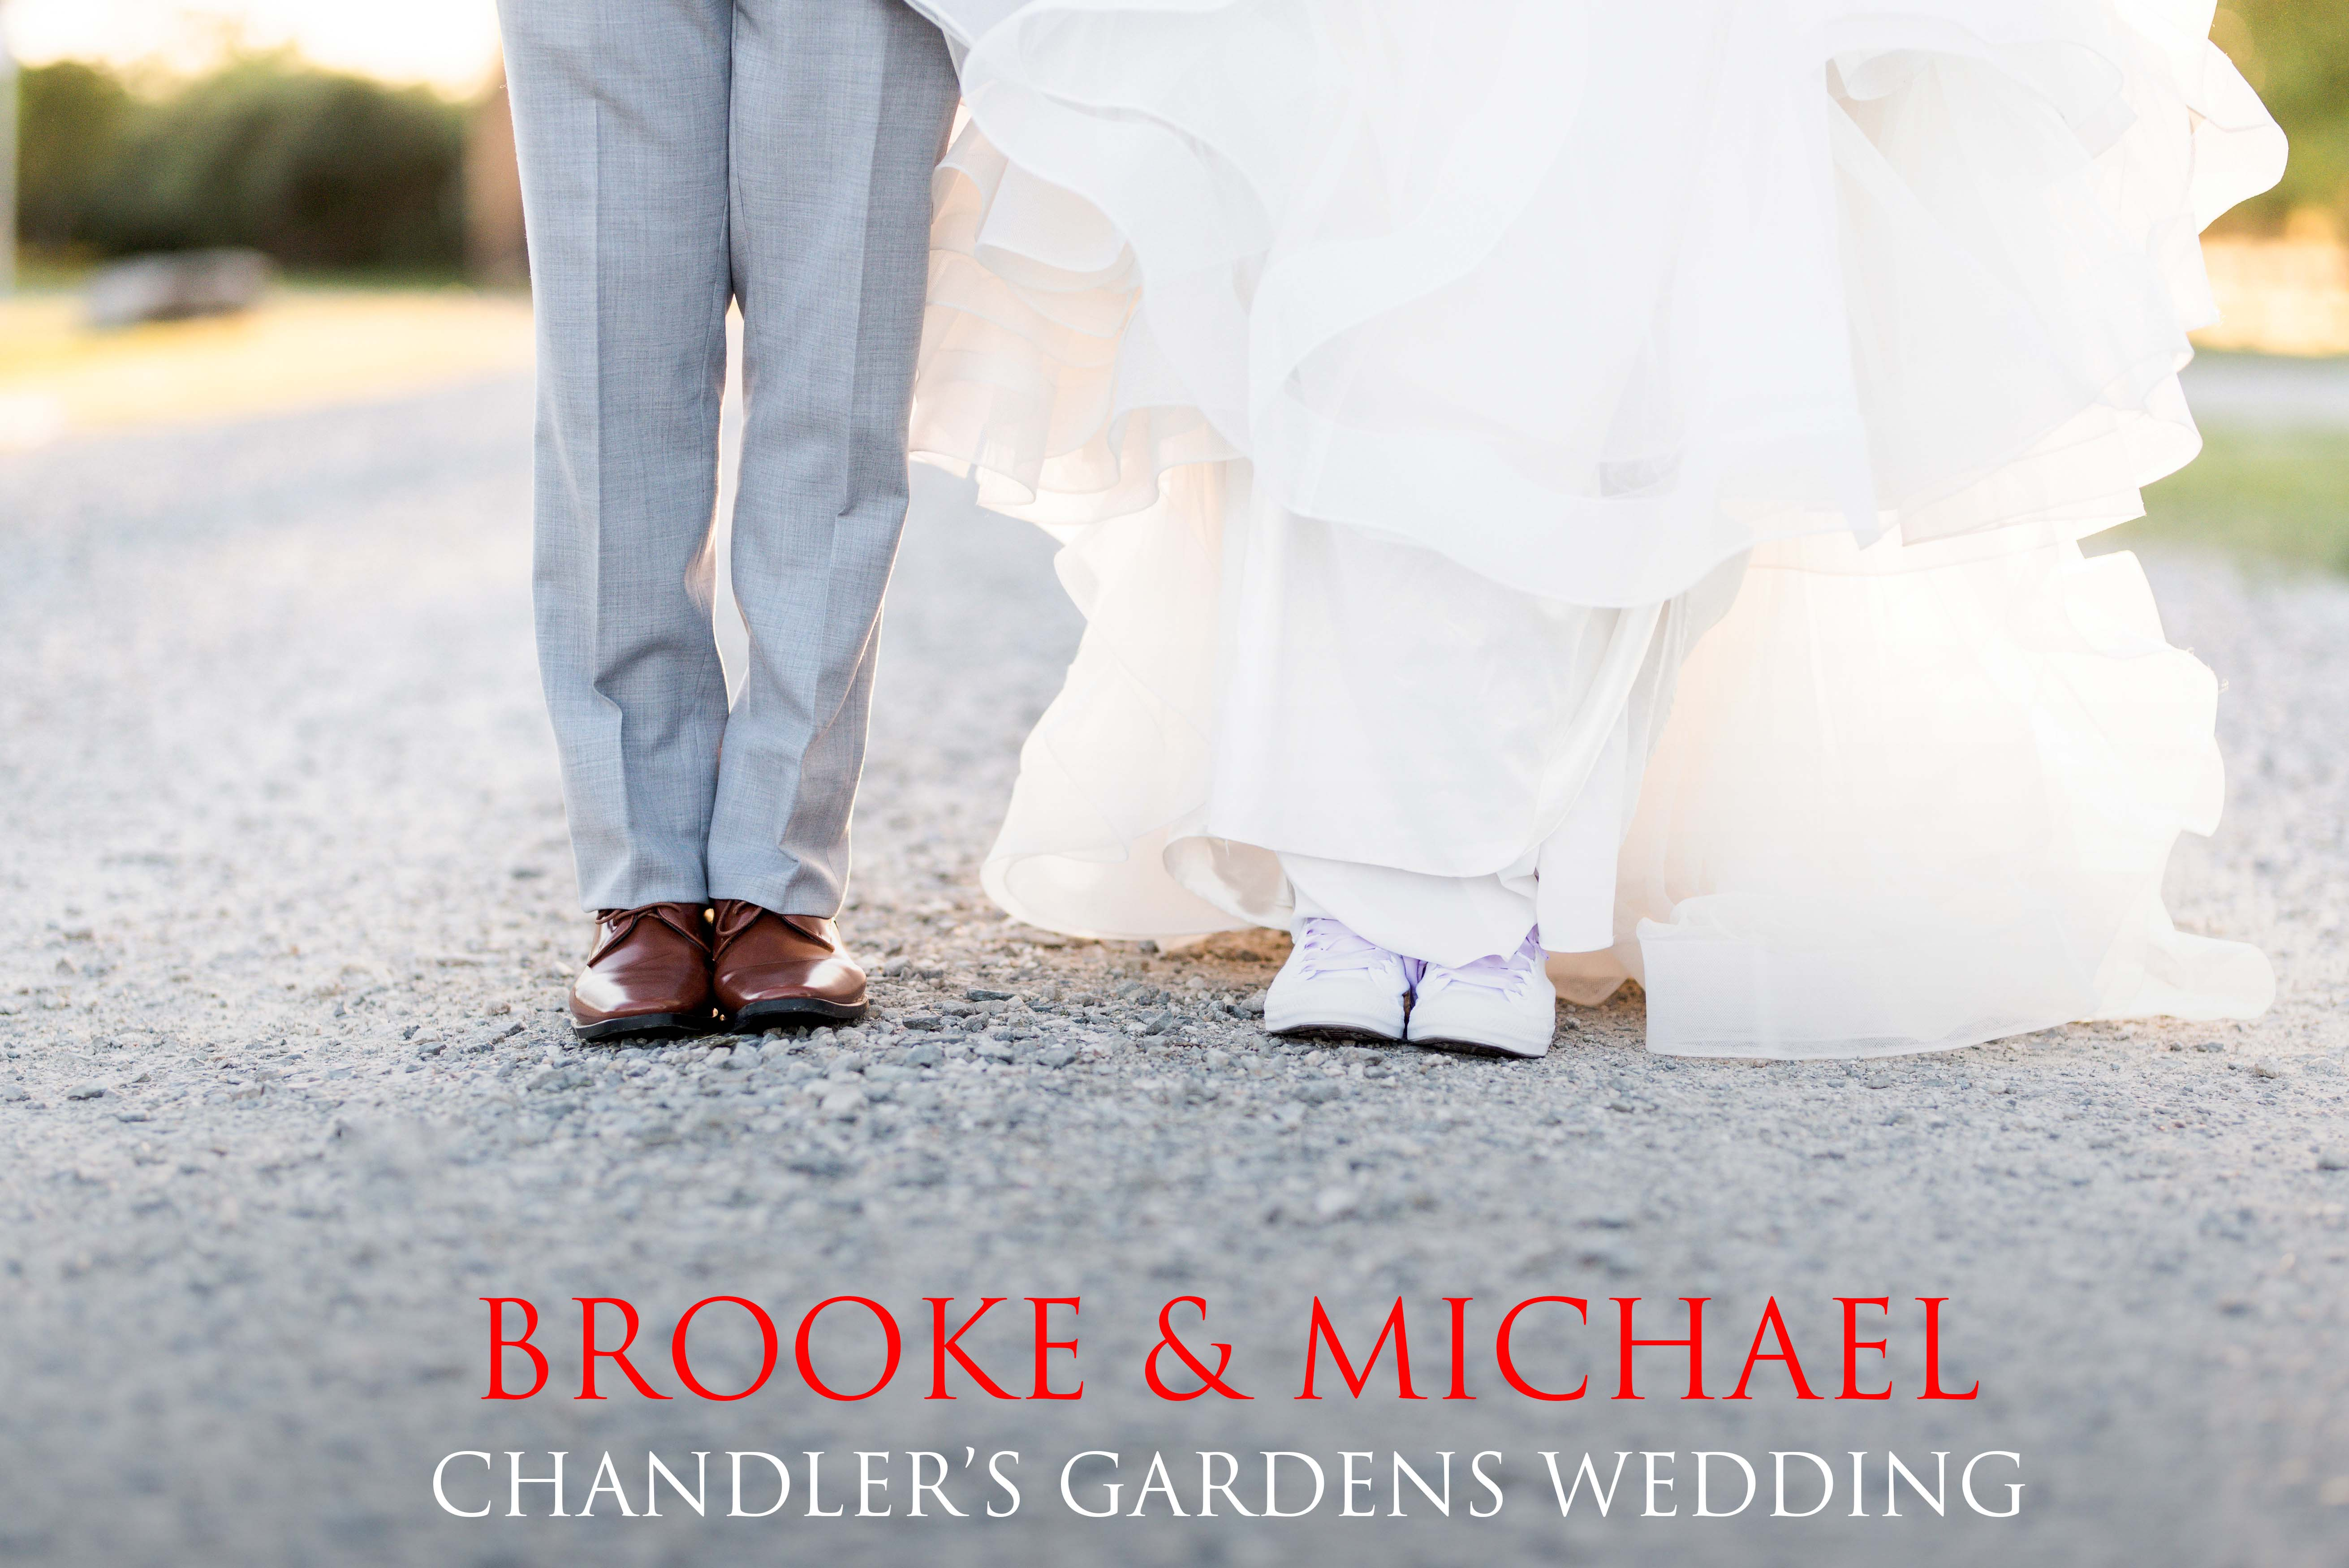 Chandler's Gardens Wedding